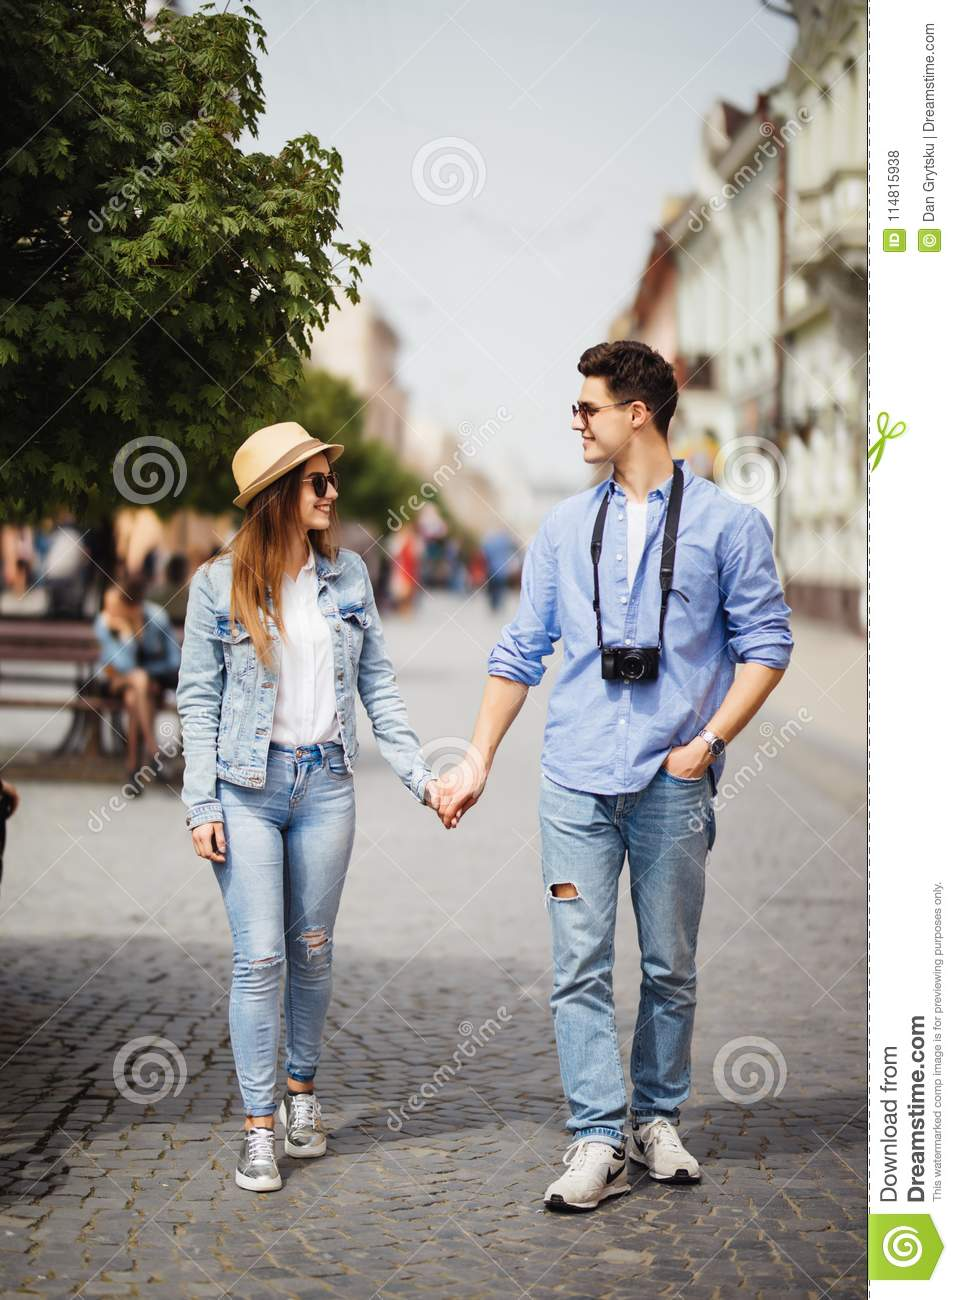 Beautiful Tourist Couple In Love Walking On Street Together. Happy Young Man And Smiling Woman Walking Around Old Town Streets, Lo